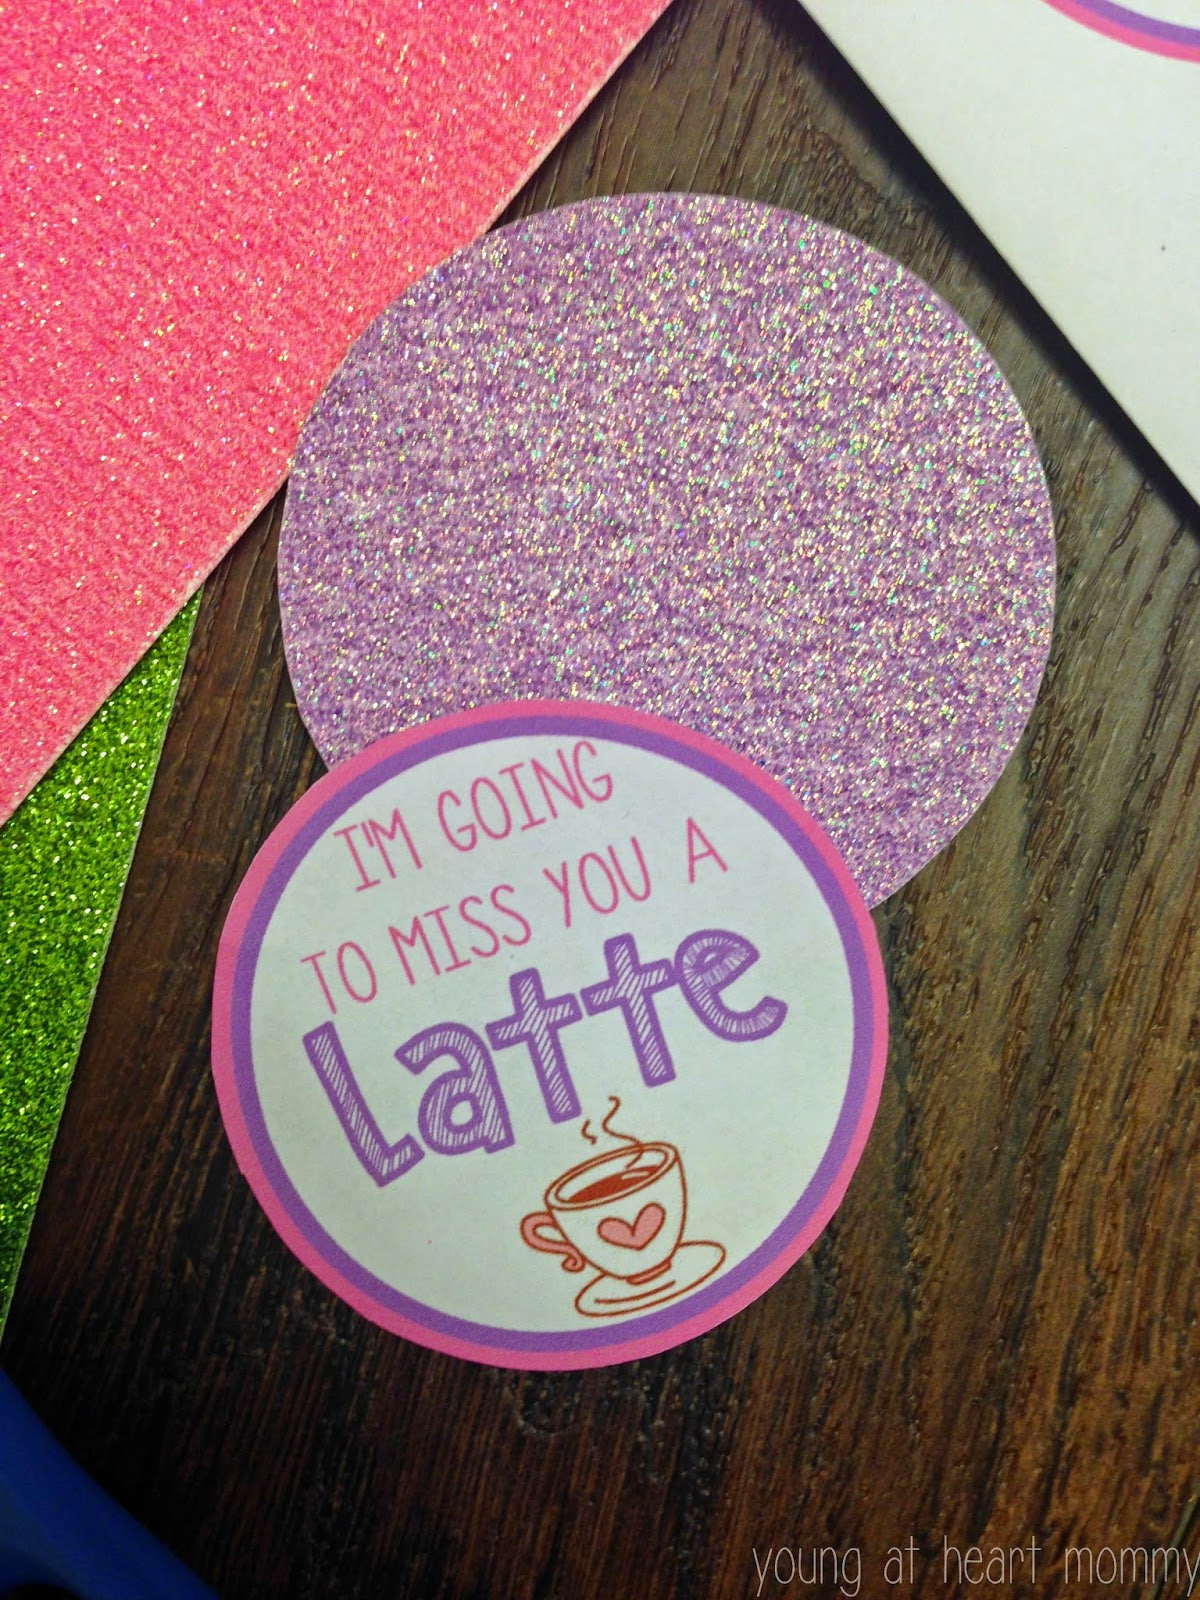 Im Going To Miss You A Latte Coffee Themed Gift Printable